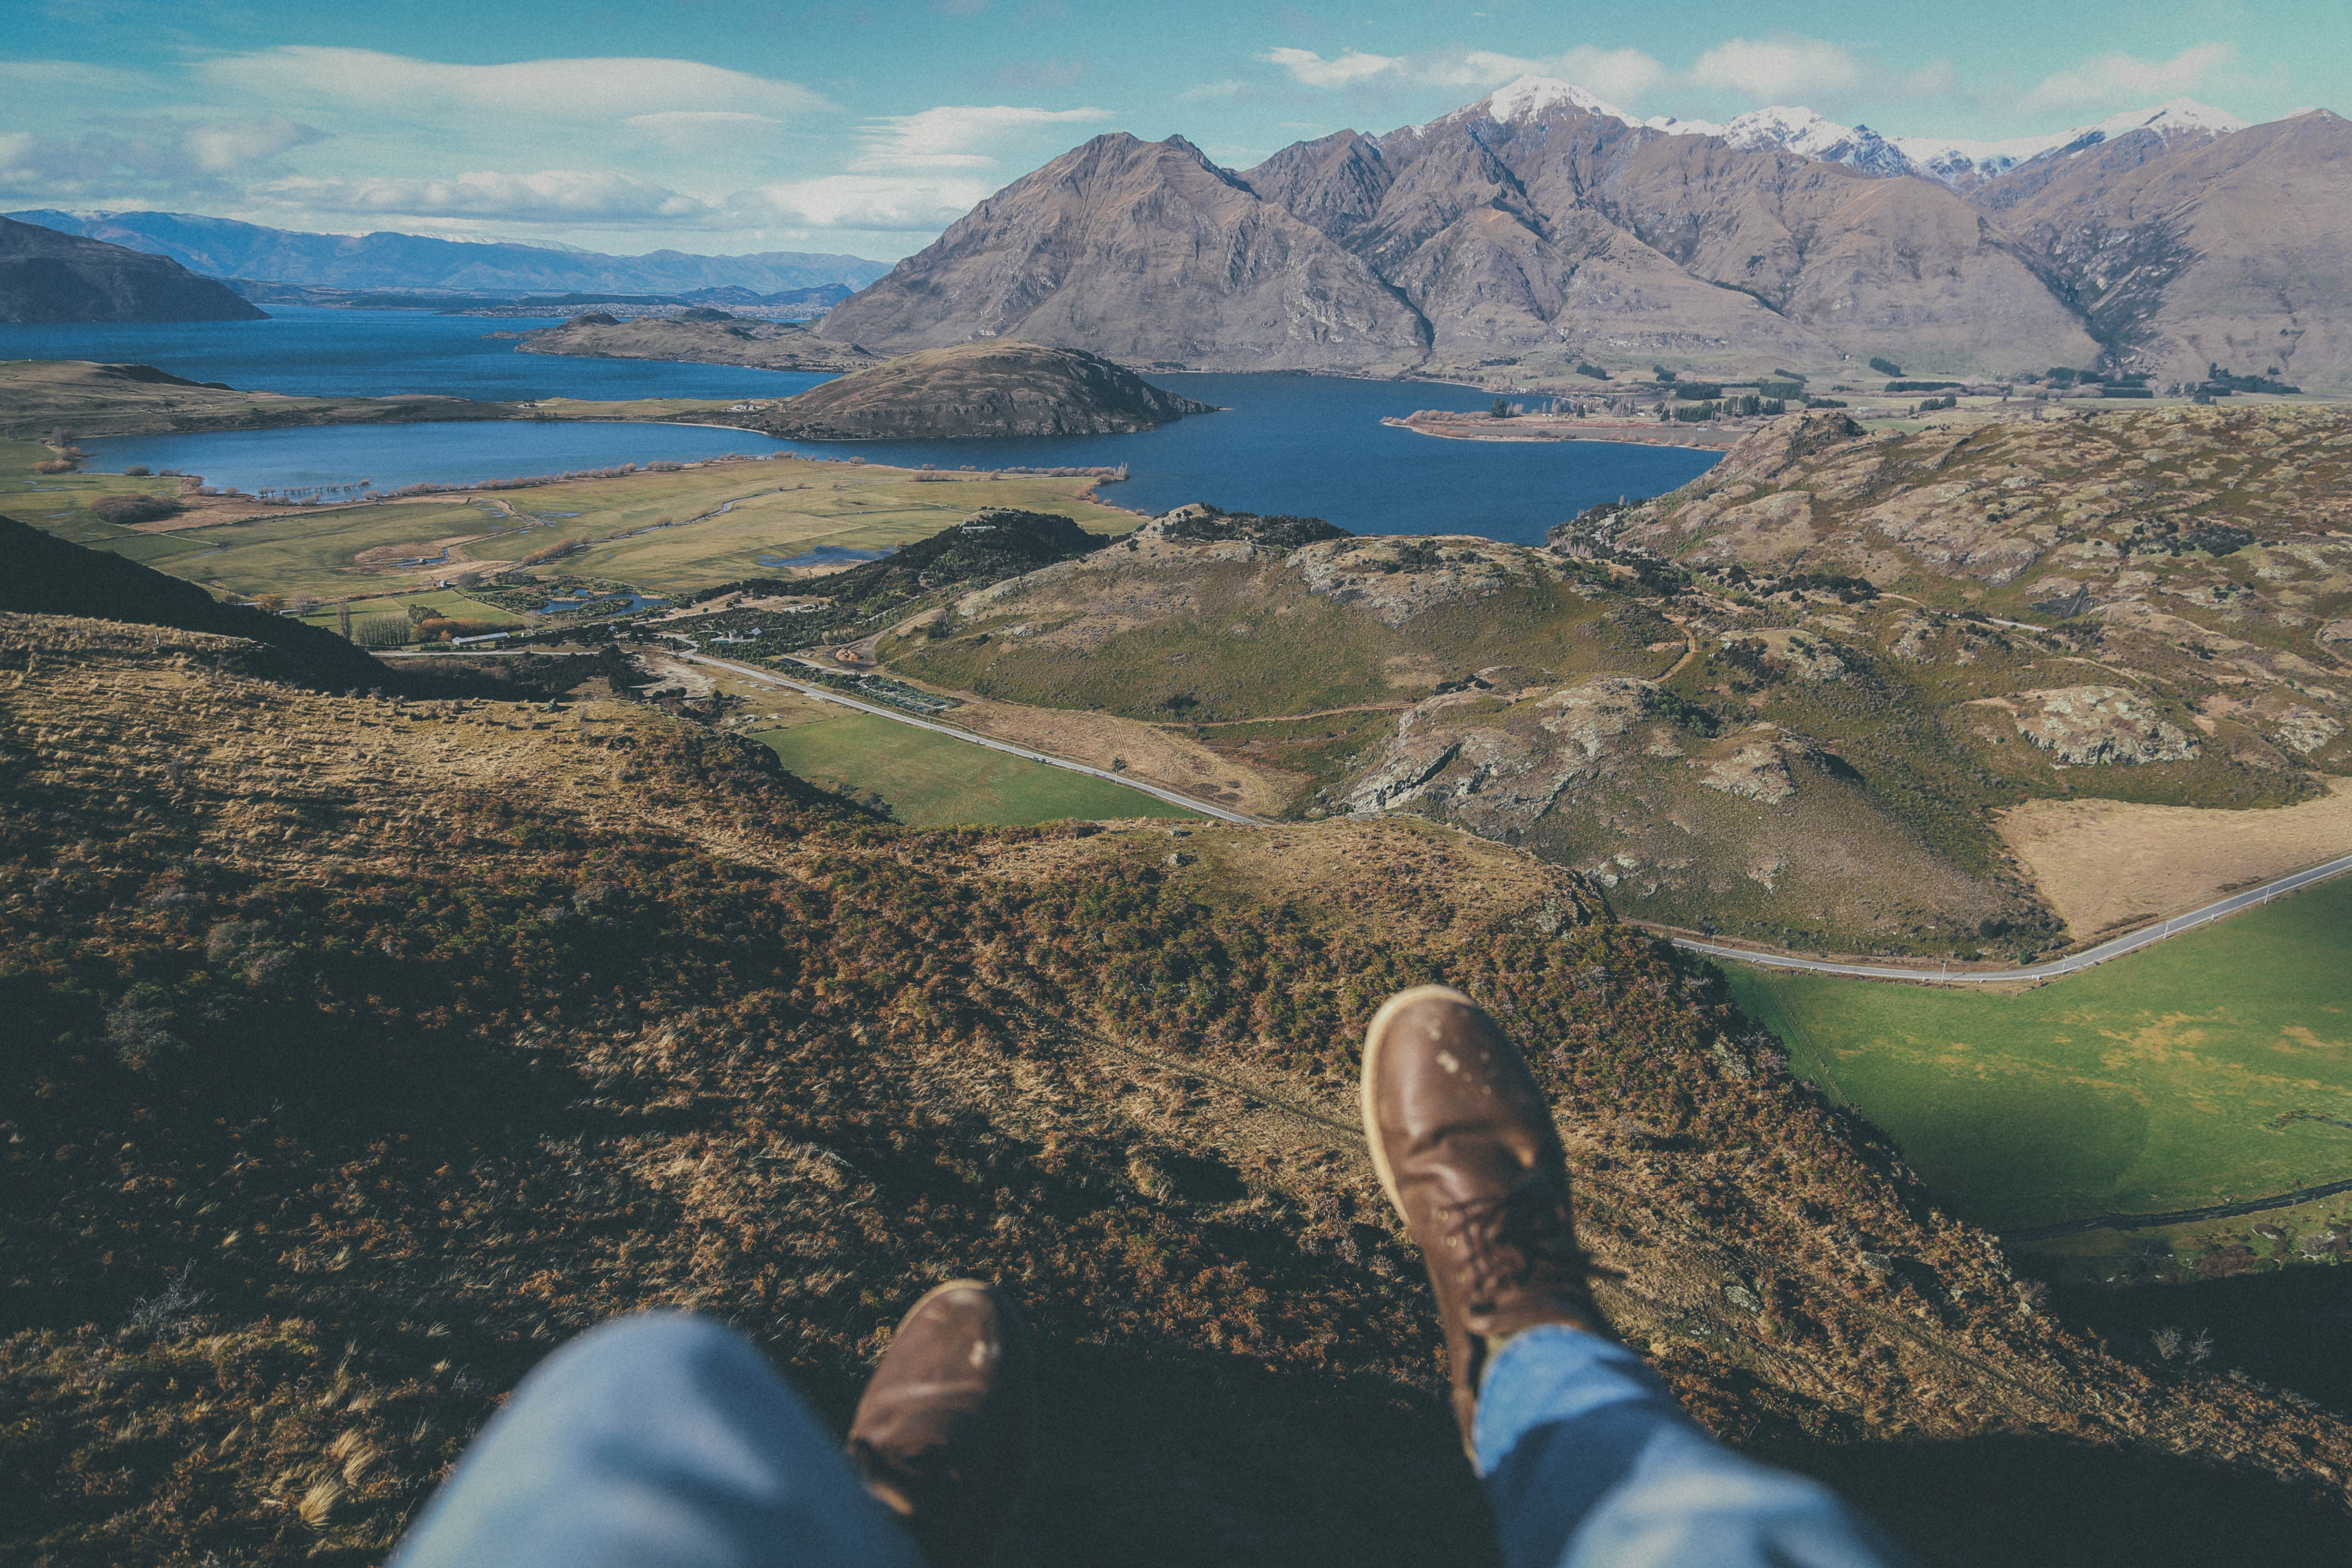 A person's legs dangling off from a hill over mountain lakes in New Zealand